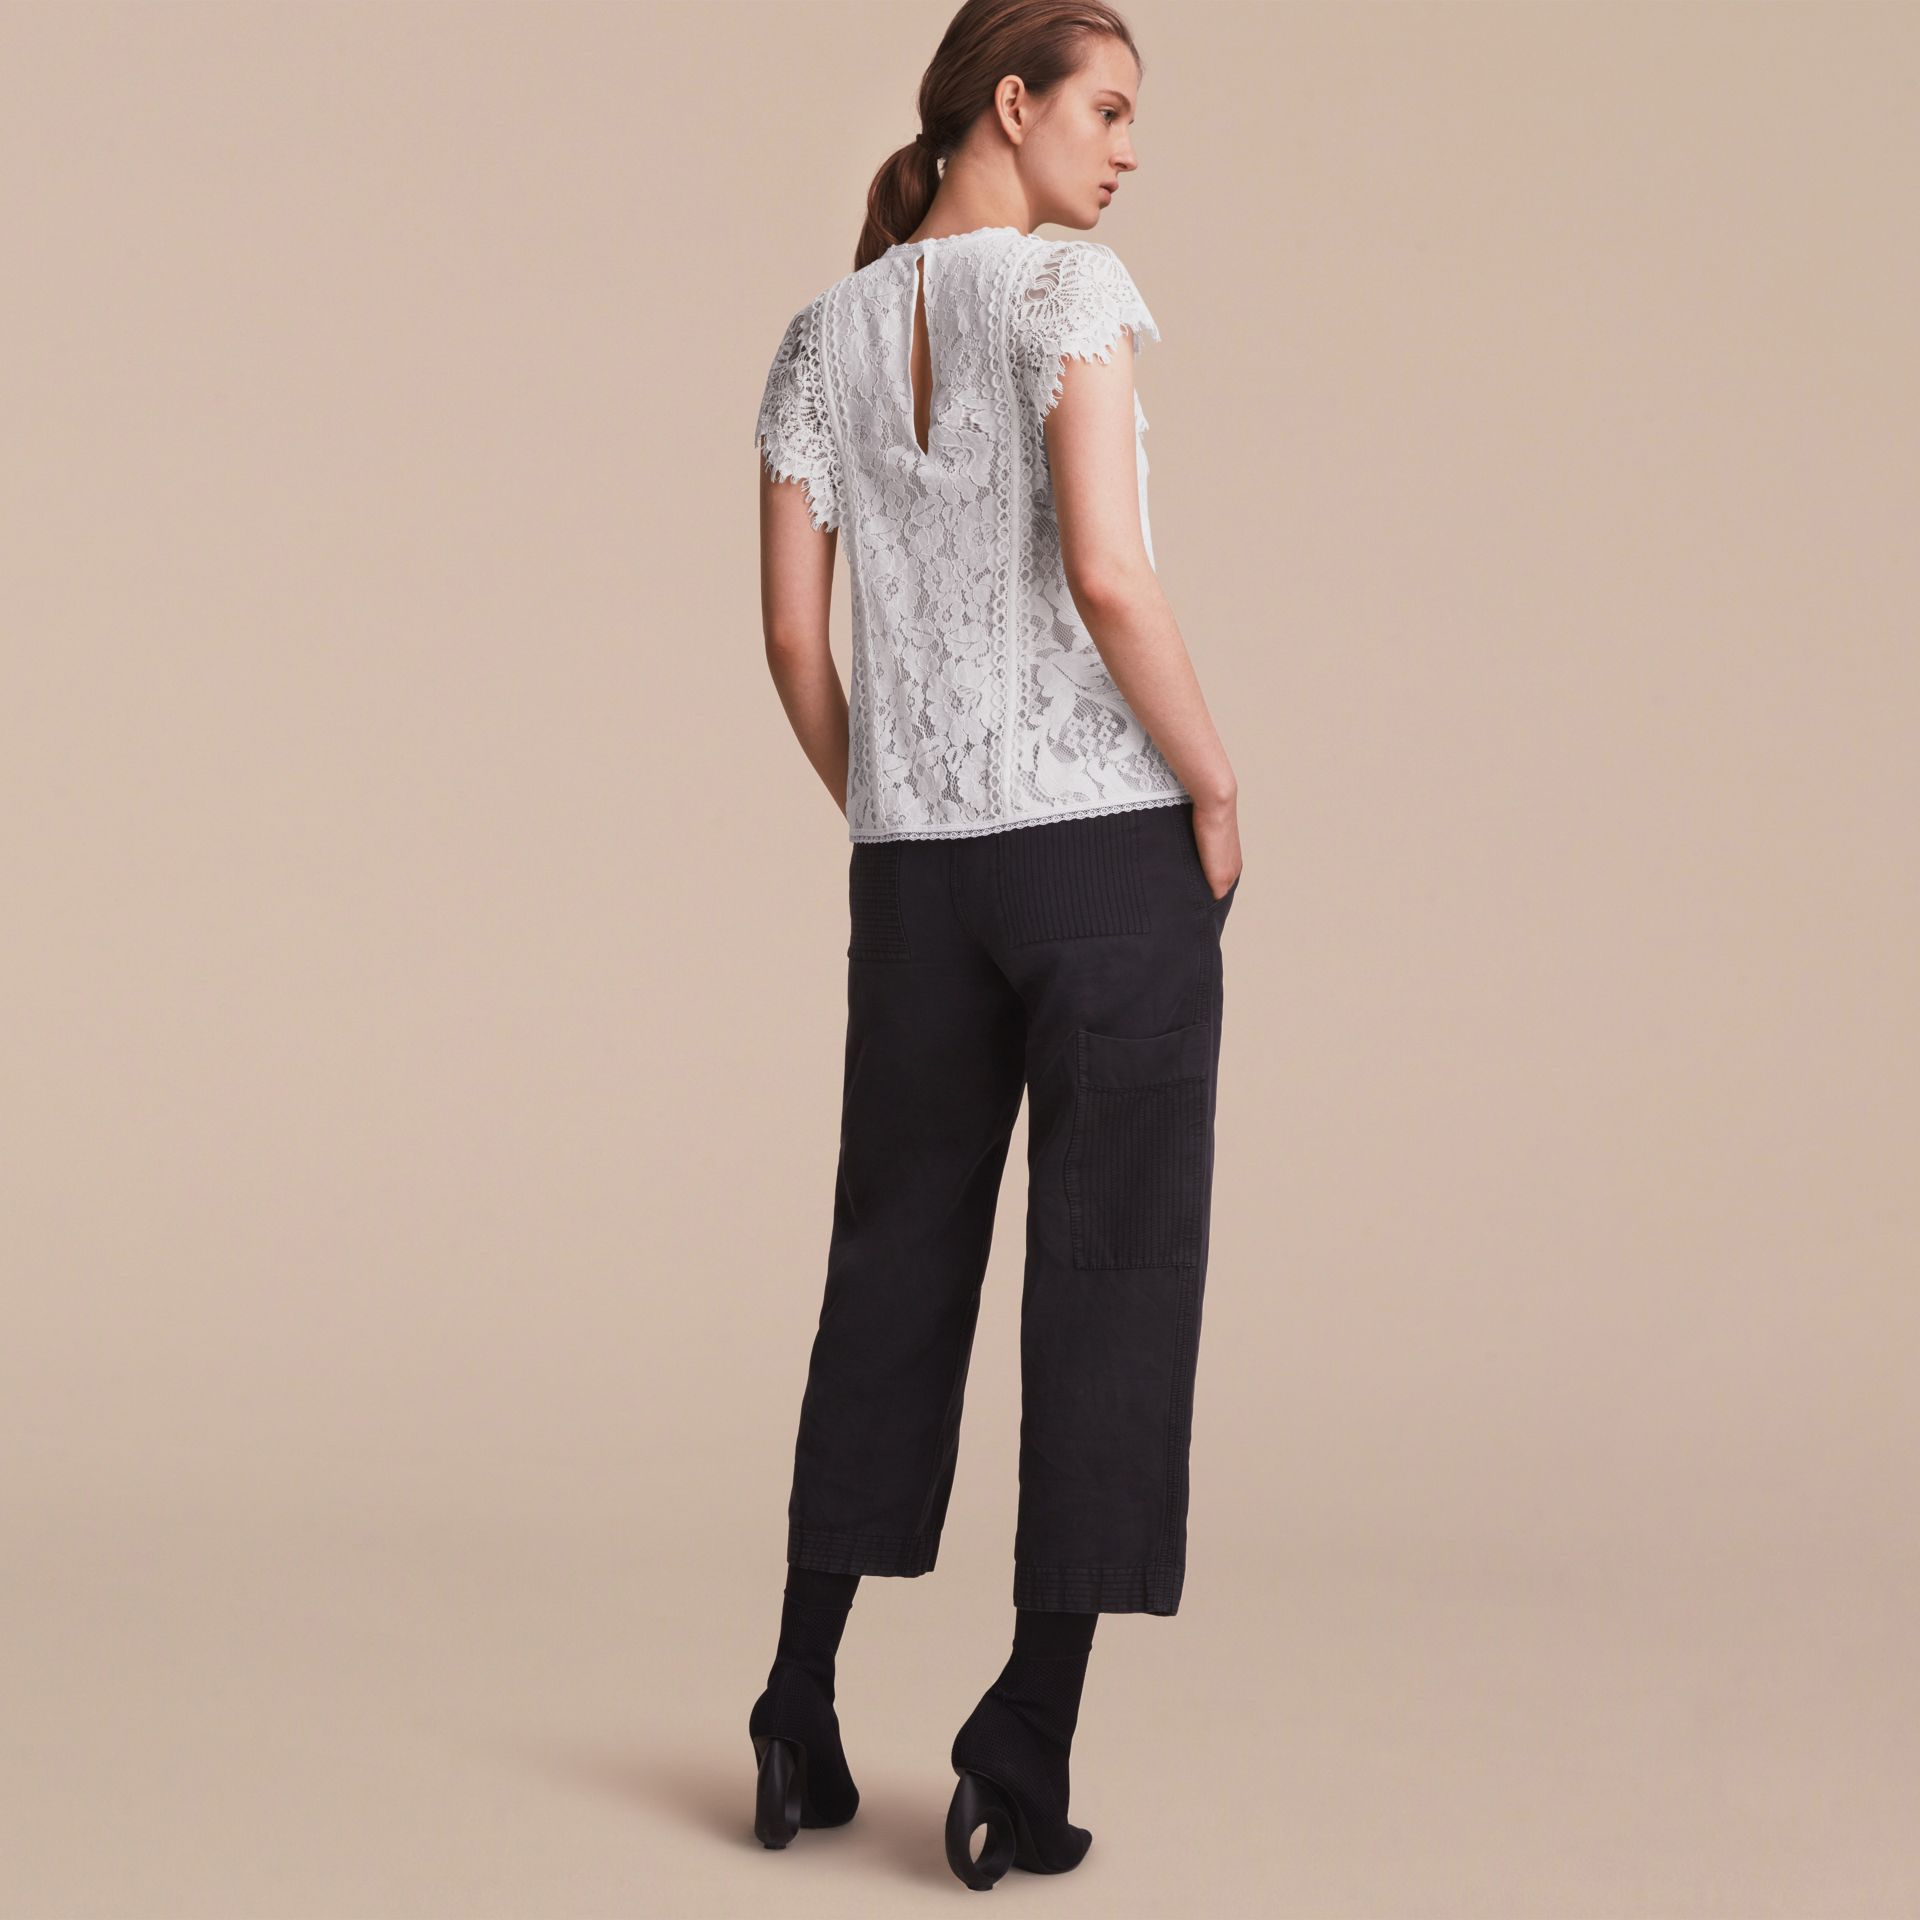 Scalloped Cap Sleeve Floral Lace Top - gallery image 3